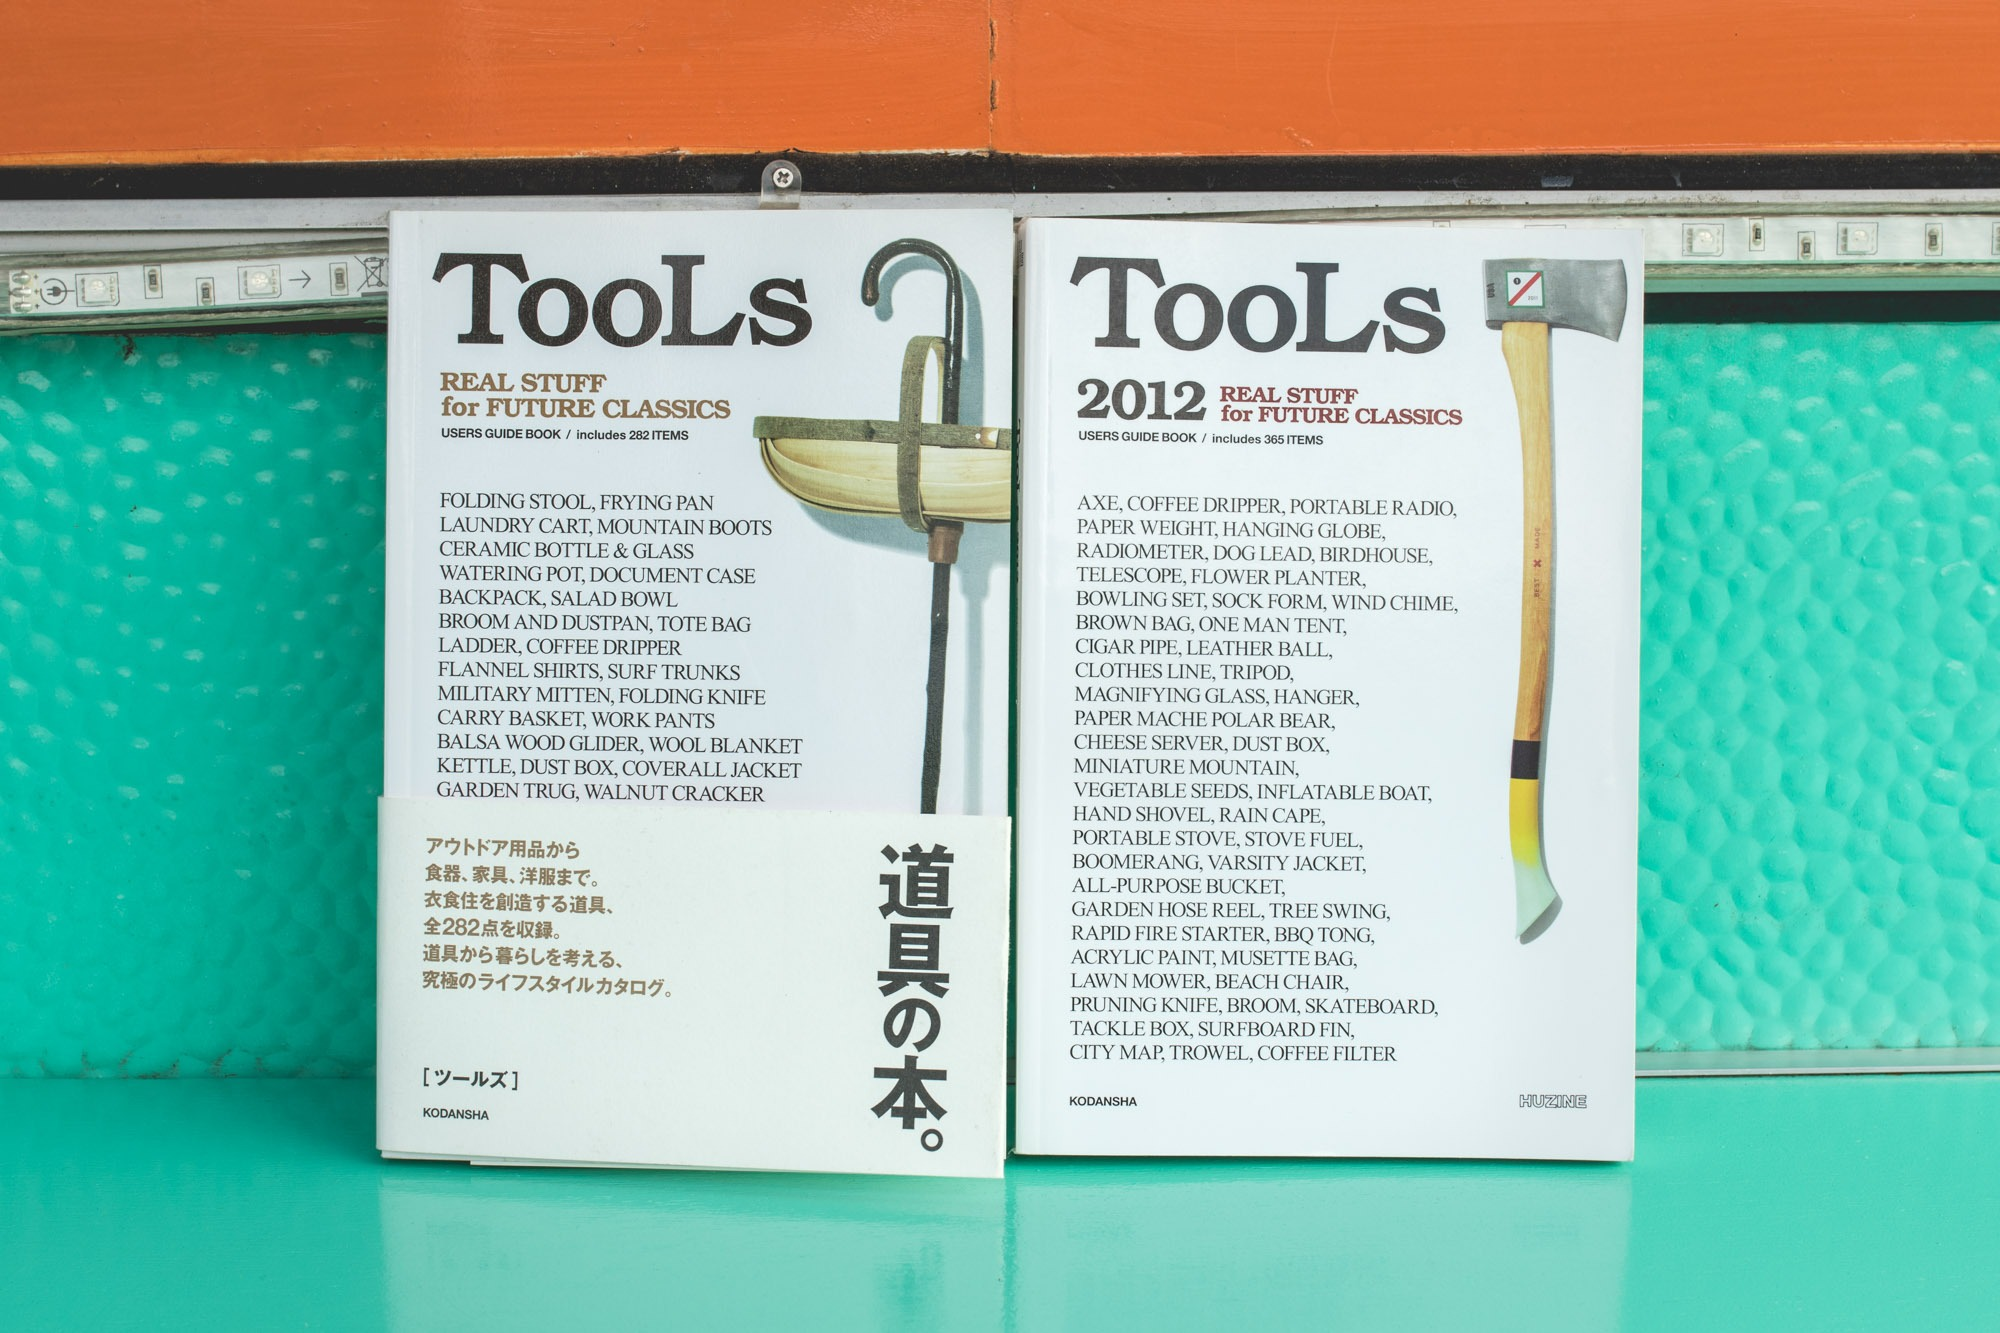 Livre Tools : Real Stuff for Future Classics